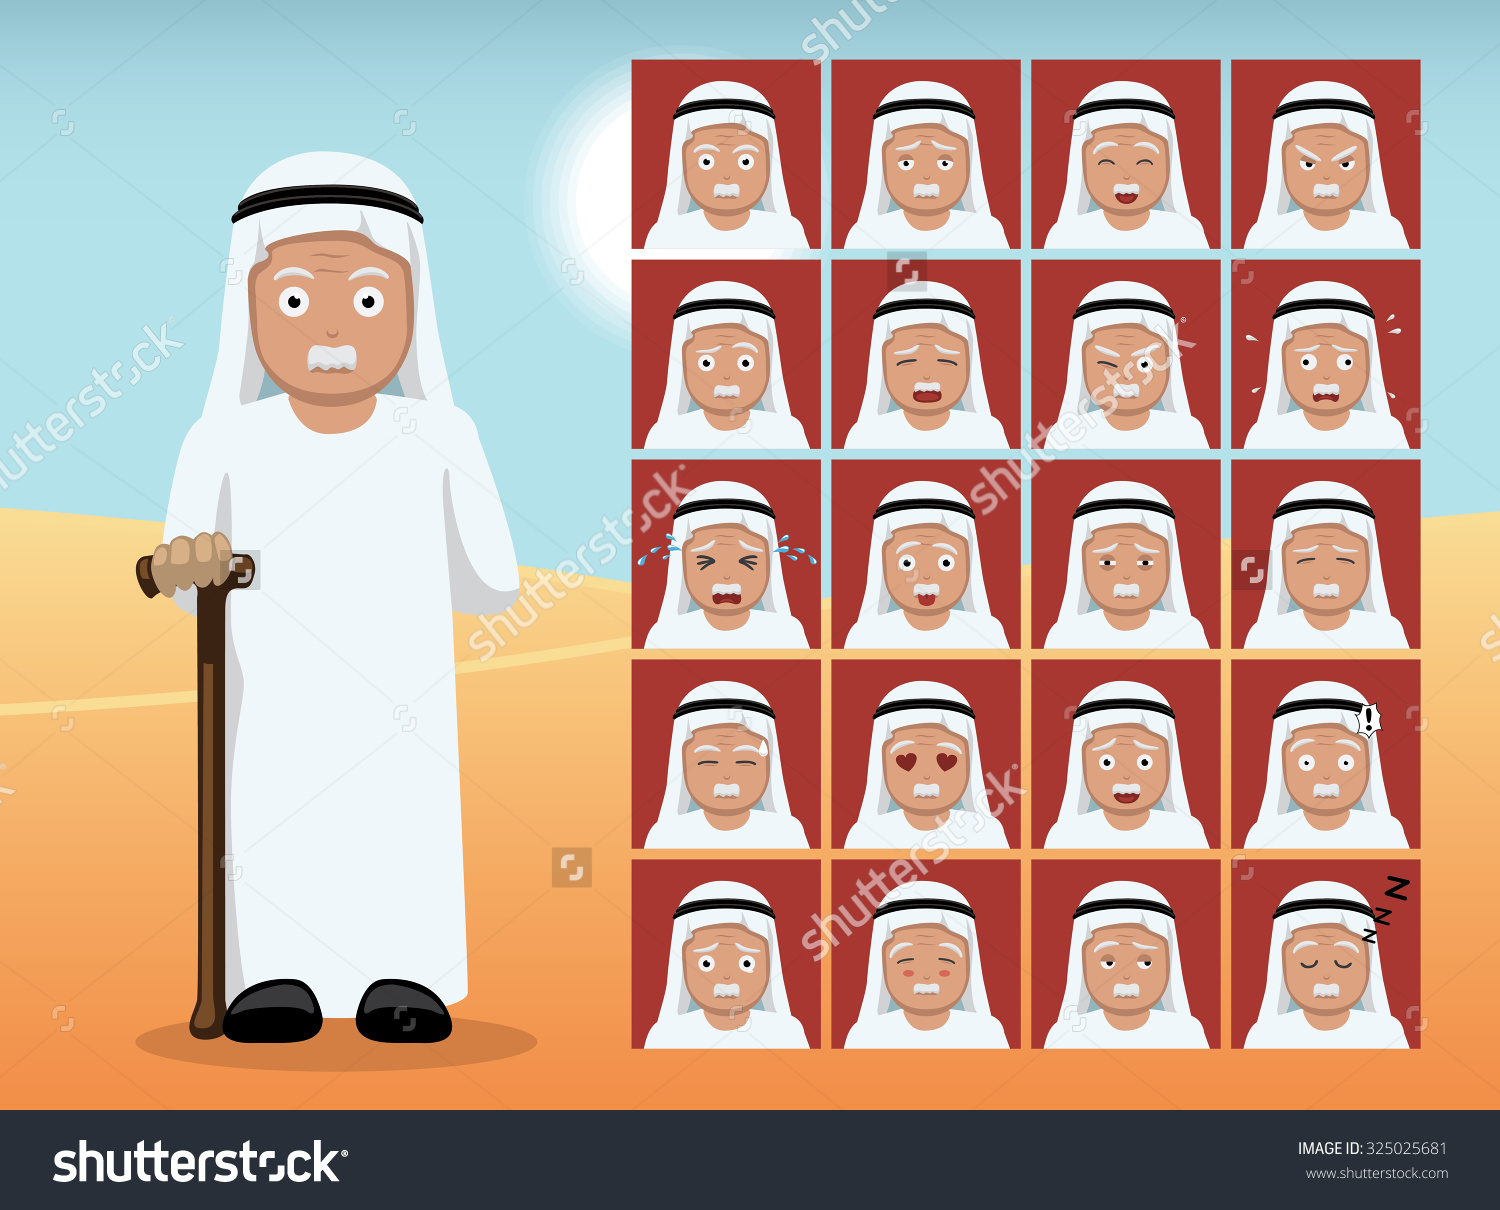 Arab Old Man Cartoon Emotion Faces Stock Vector 325025681 ... svg free stock